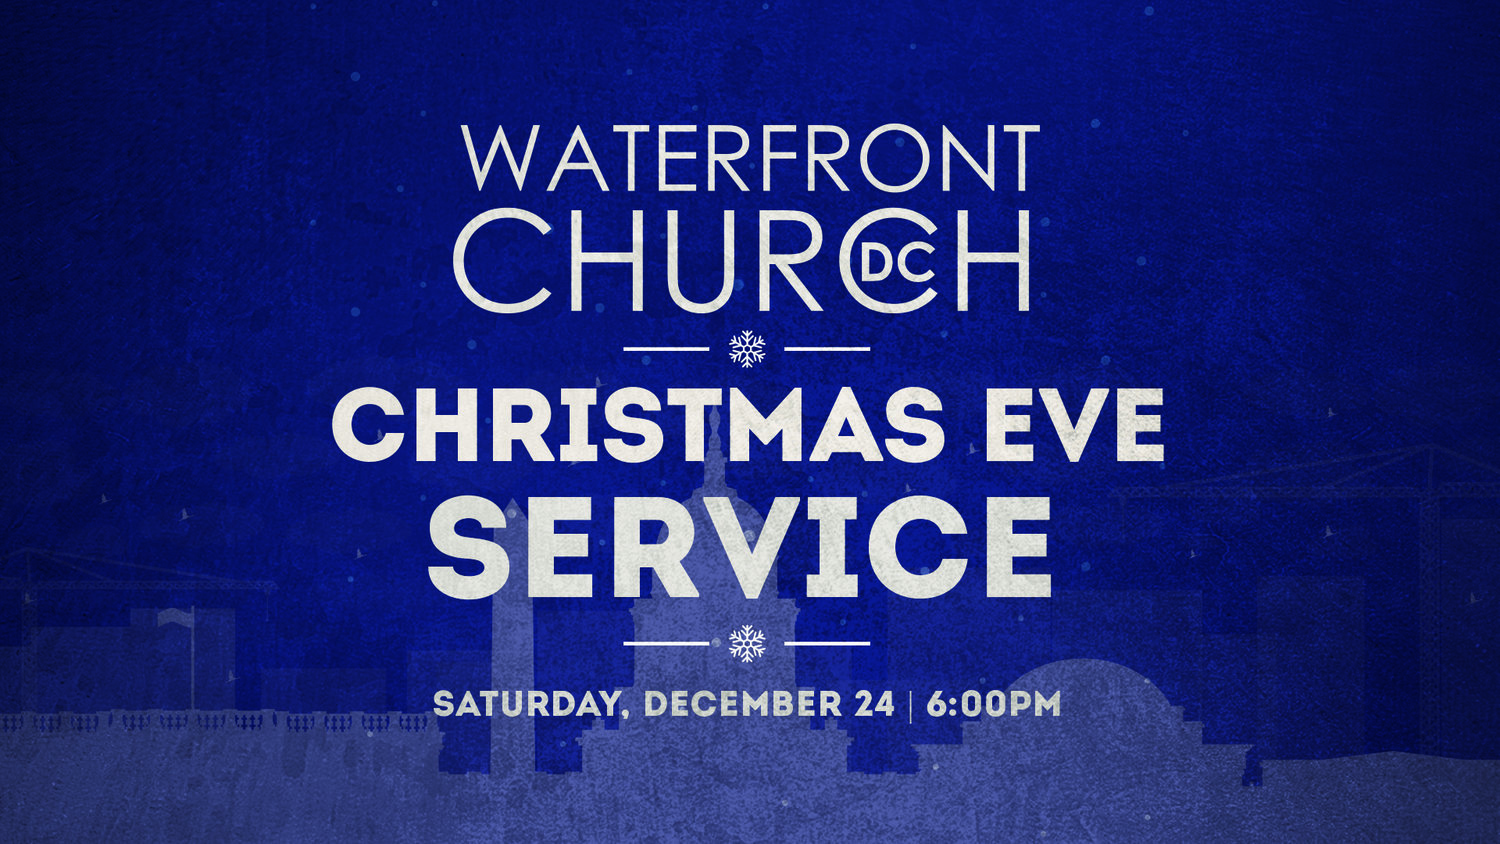 waterfront church christmas eve service - Christmas Church Service